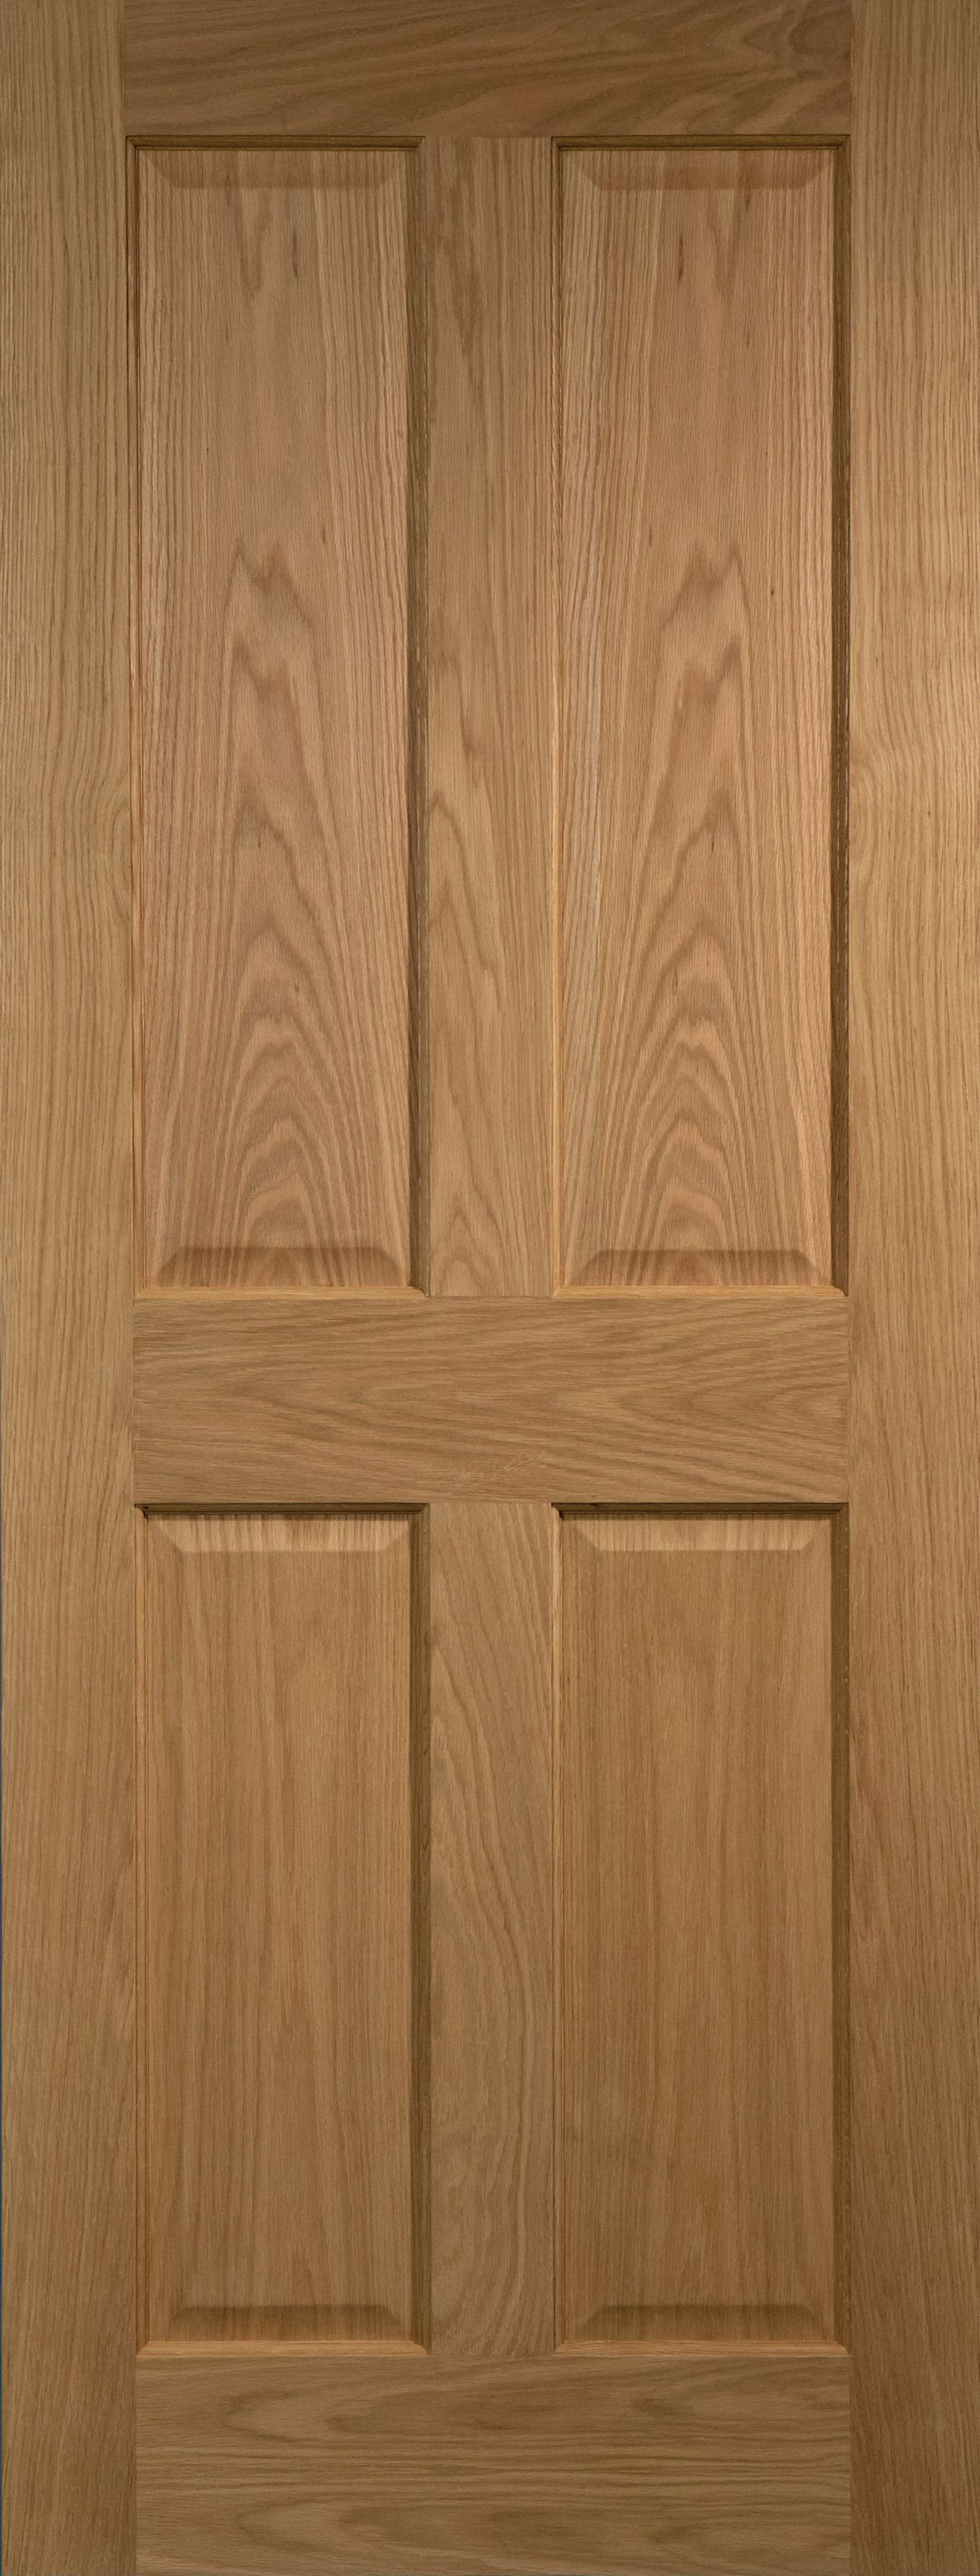 4 Panel Prefinished Oak Unglazed Internal Standard Door, (h)1981mm (w)686mm